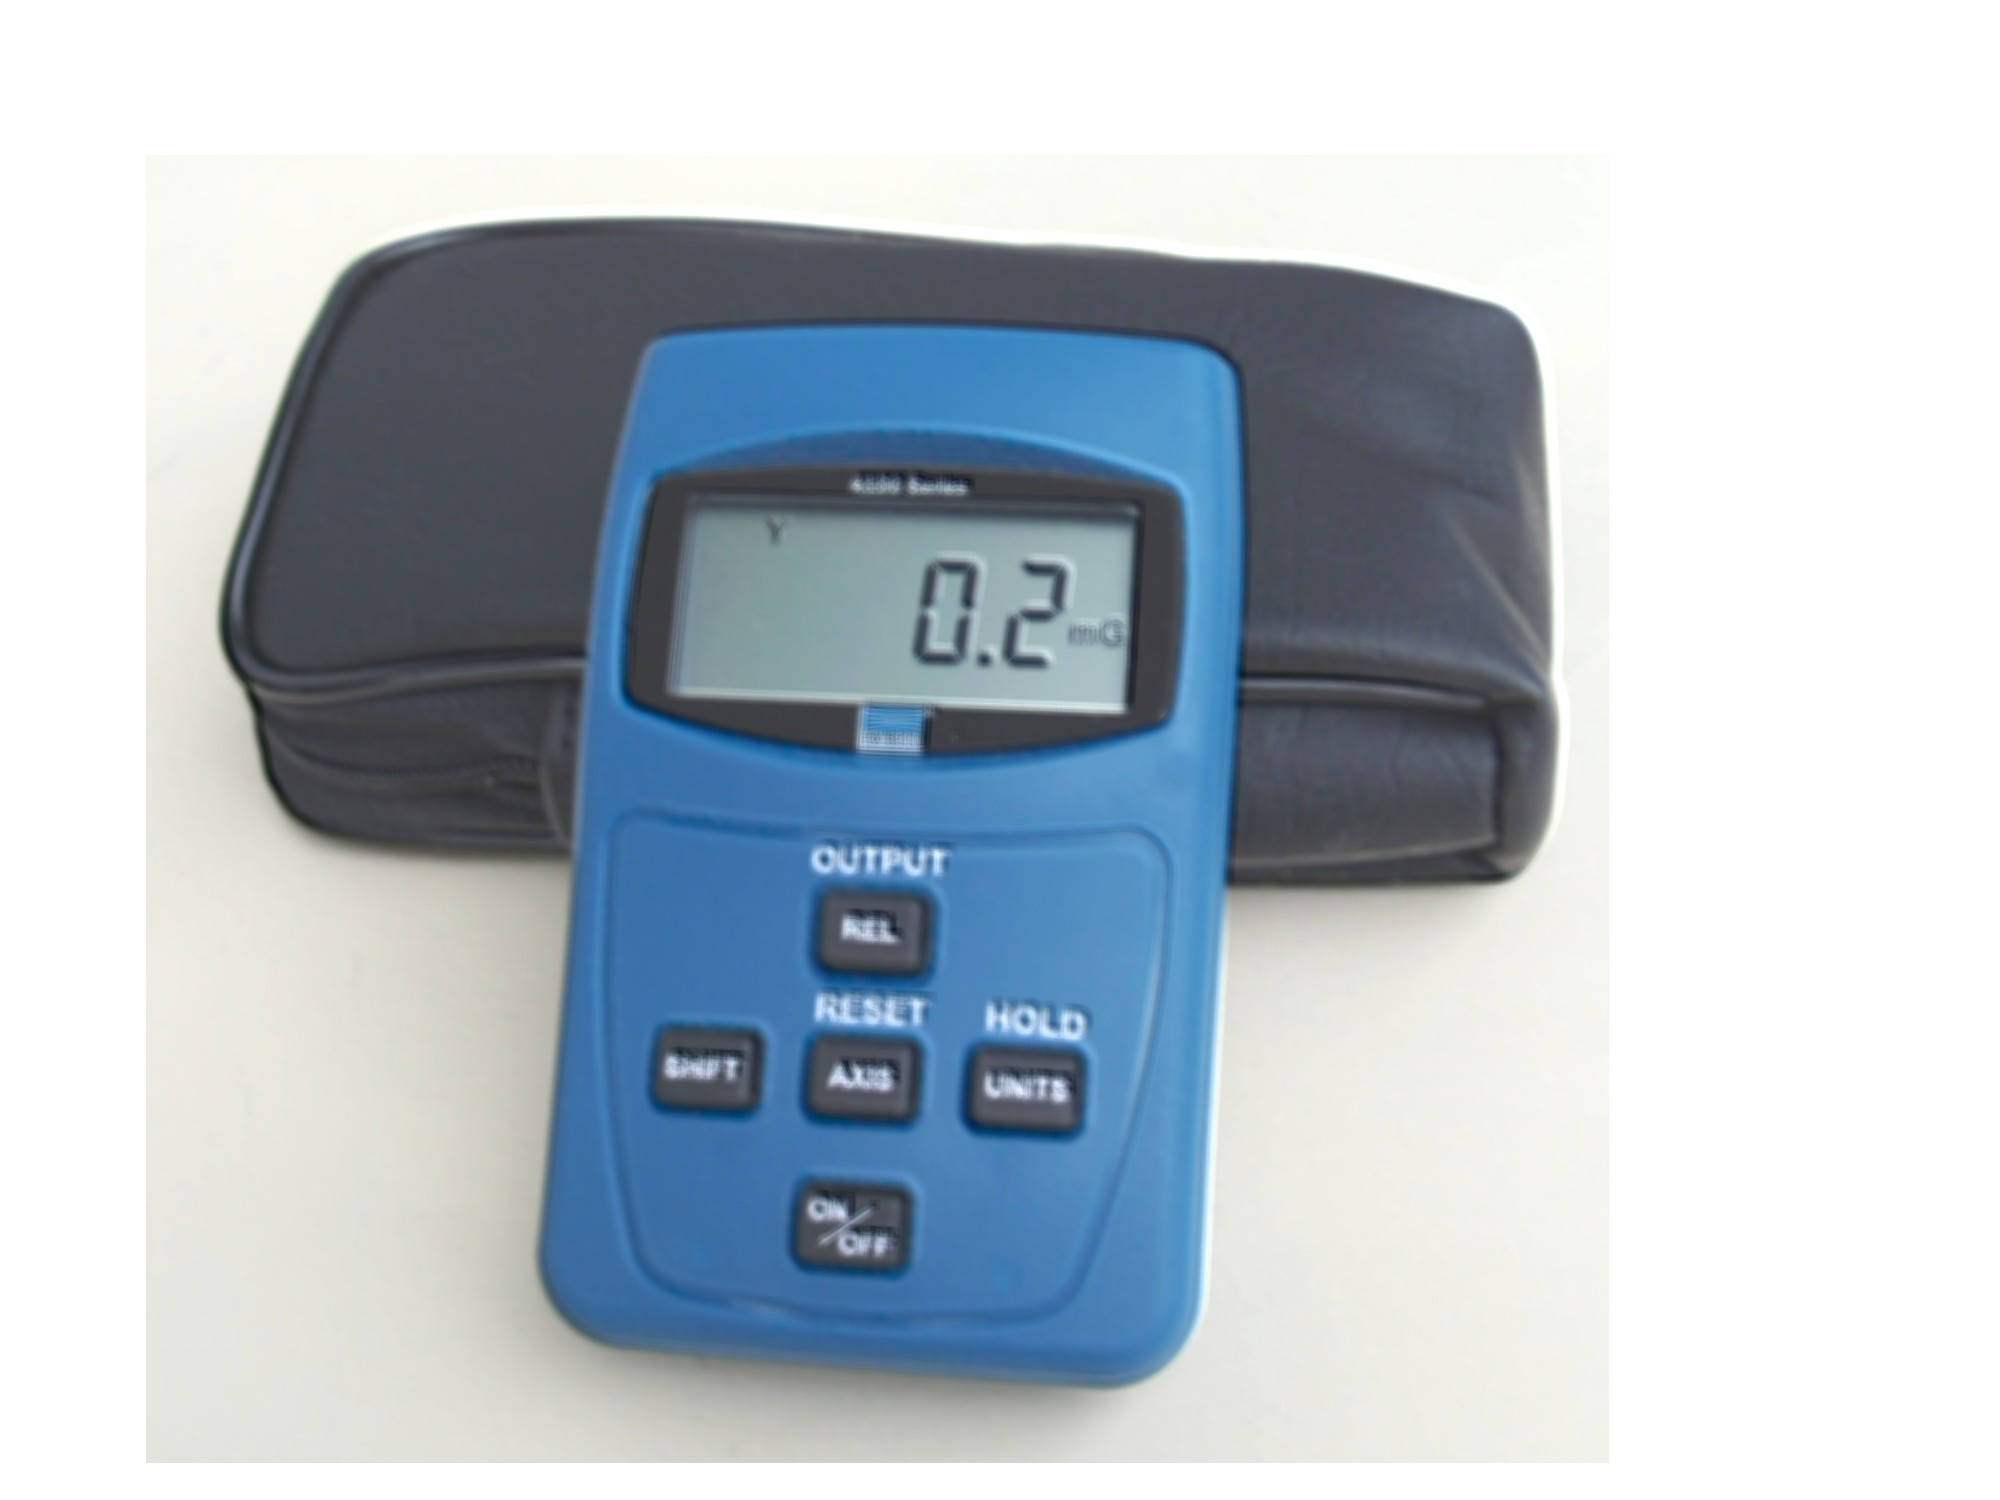 images/Integrity/FWBELL model 4190:3 axis 50/60 Hz EMF milligaussmeter